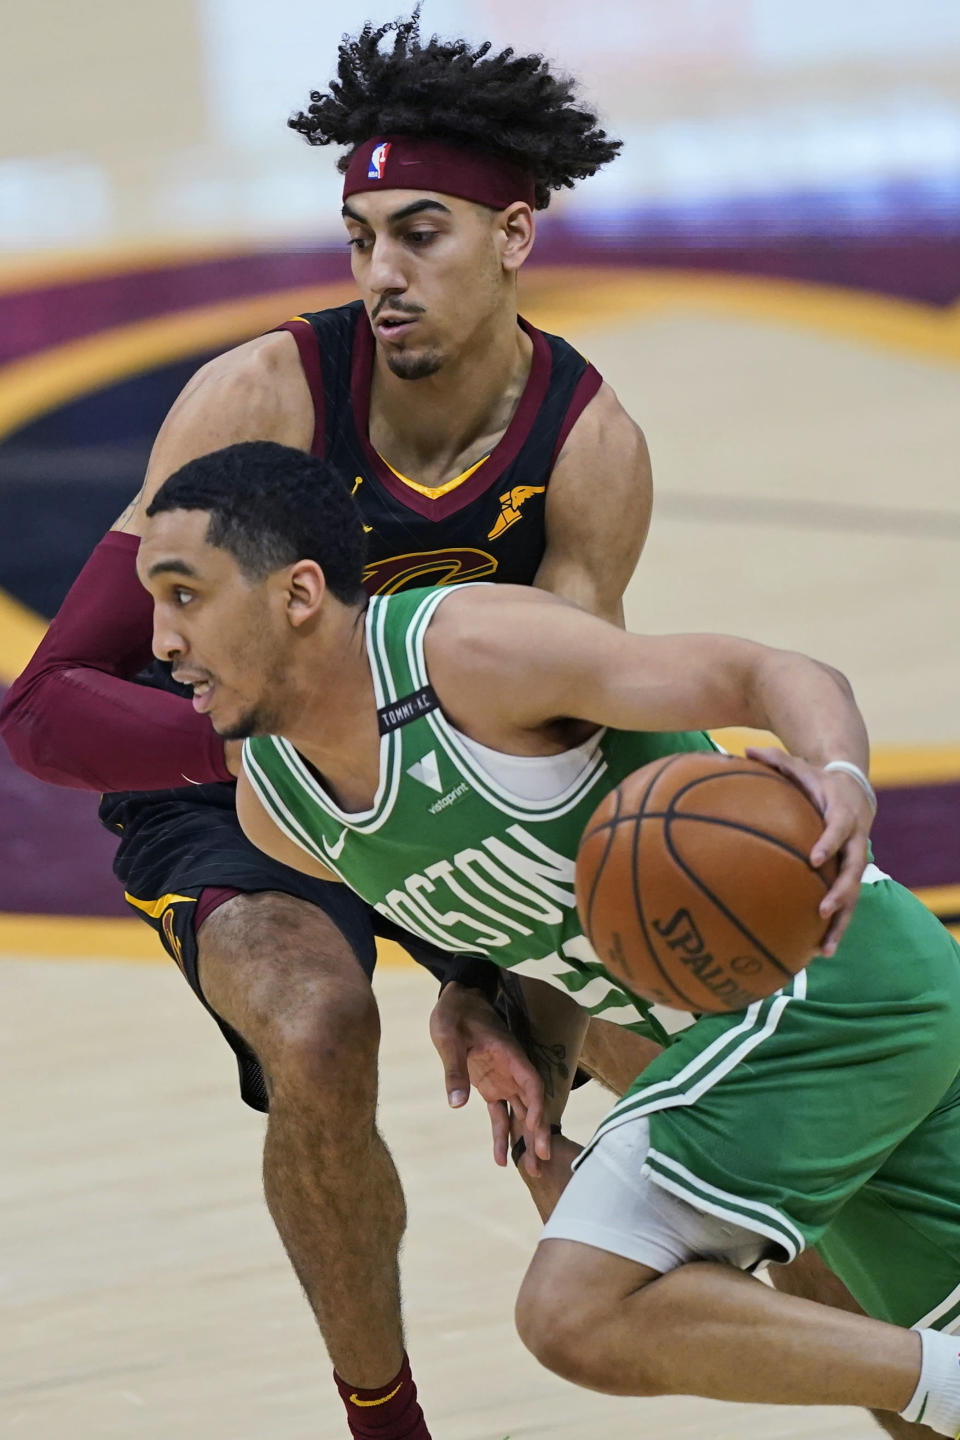 Boston Celtics' Tremont Waters (51) drives against Cleveland Cavaliers' Brodric Thomas (33) during the first half of an NBA basketball game, Wednesday, May 12, 2021, in Cleveland. (AP Photo/Tony Dejak)